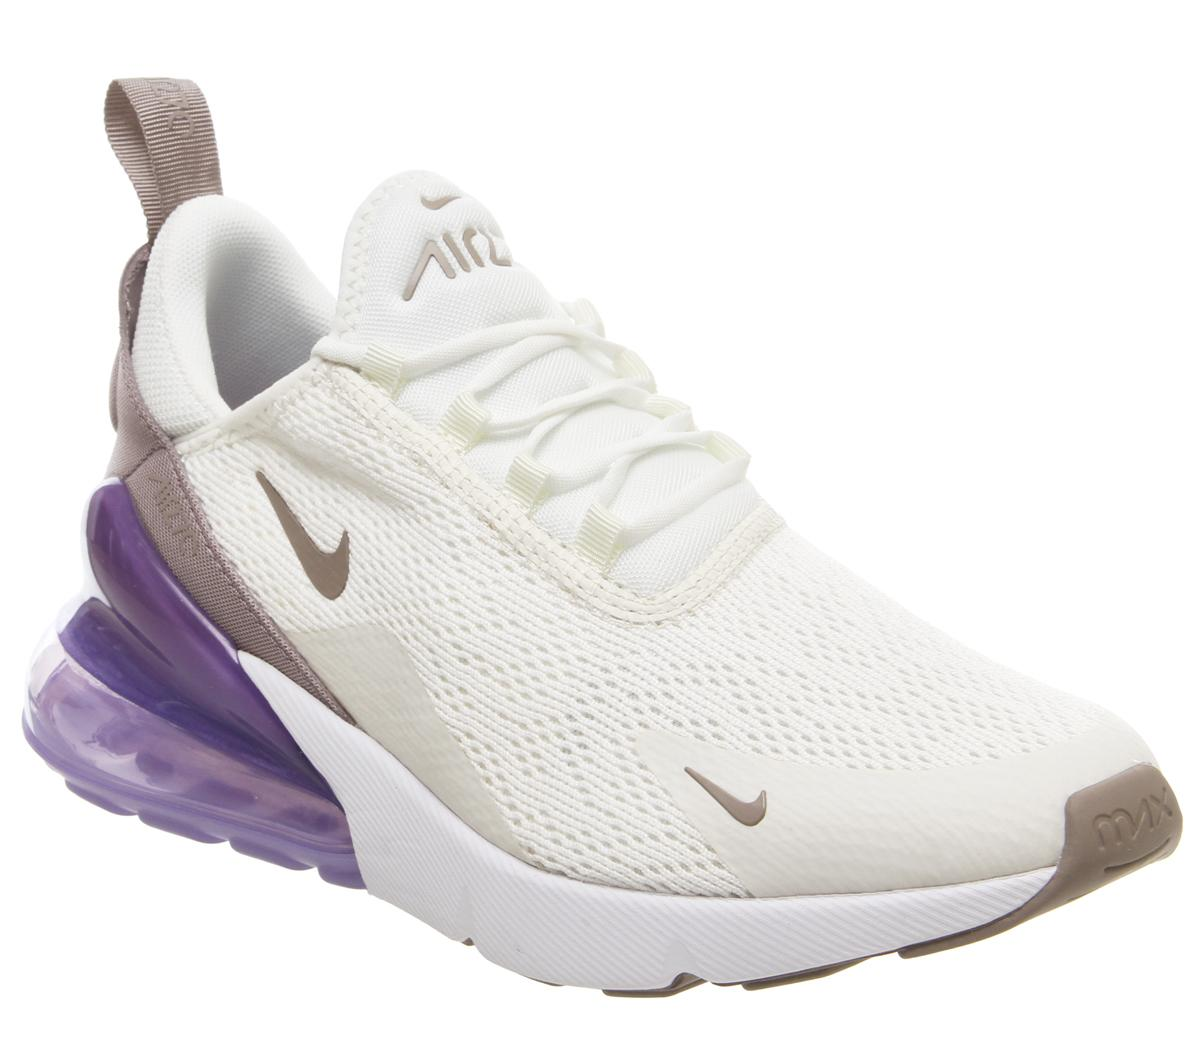 nike W AIR MAX 270 SAILPUMICE SPACE PURPLE WHITE bei